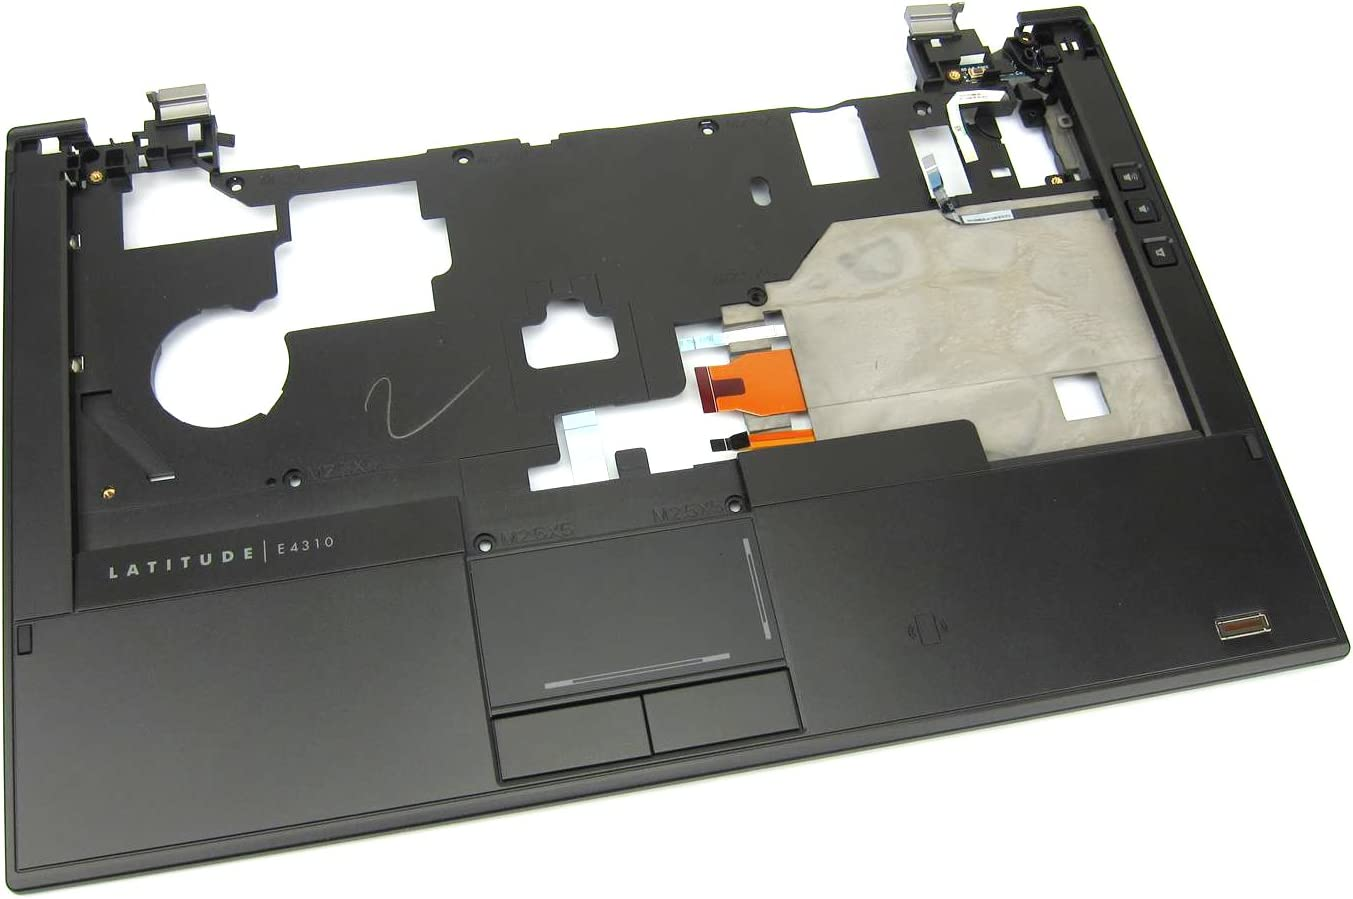 Dell Latitude E4310 Palmrest Touchpad Assembly with Biometric Fingerprint Reader - N9VWR